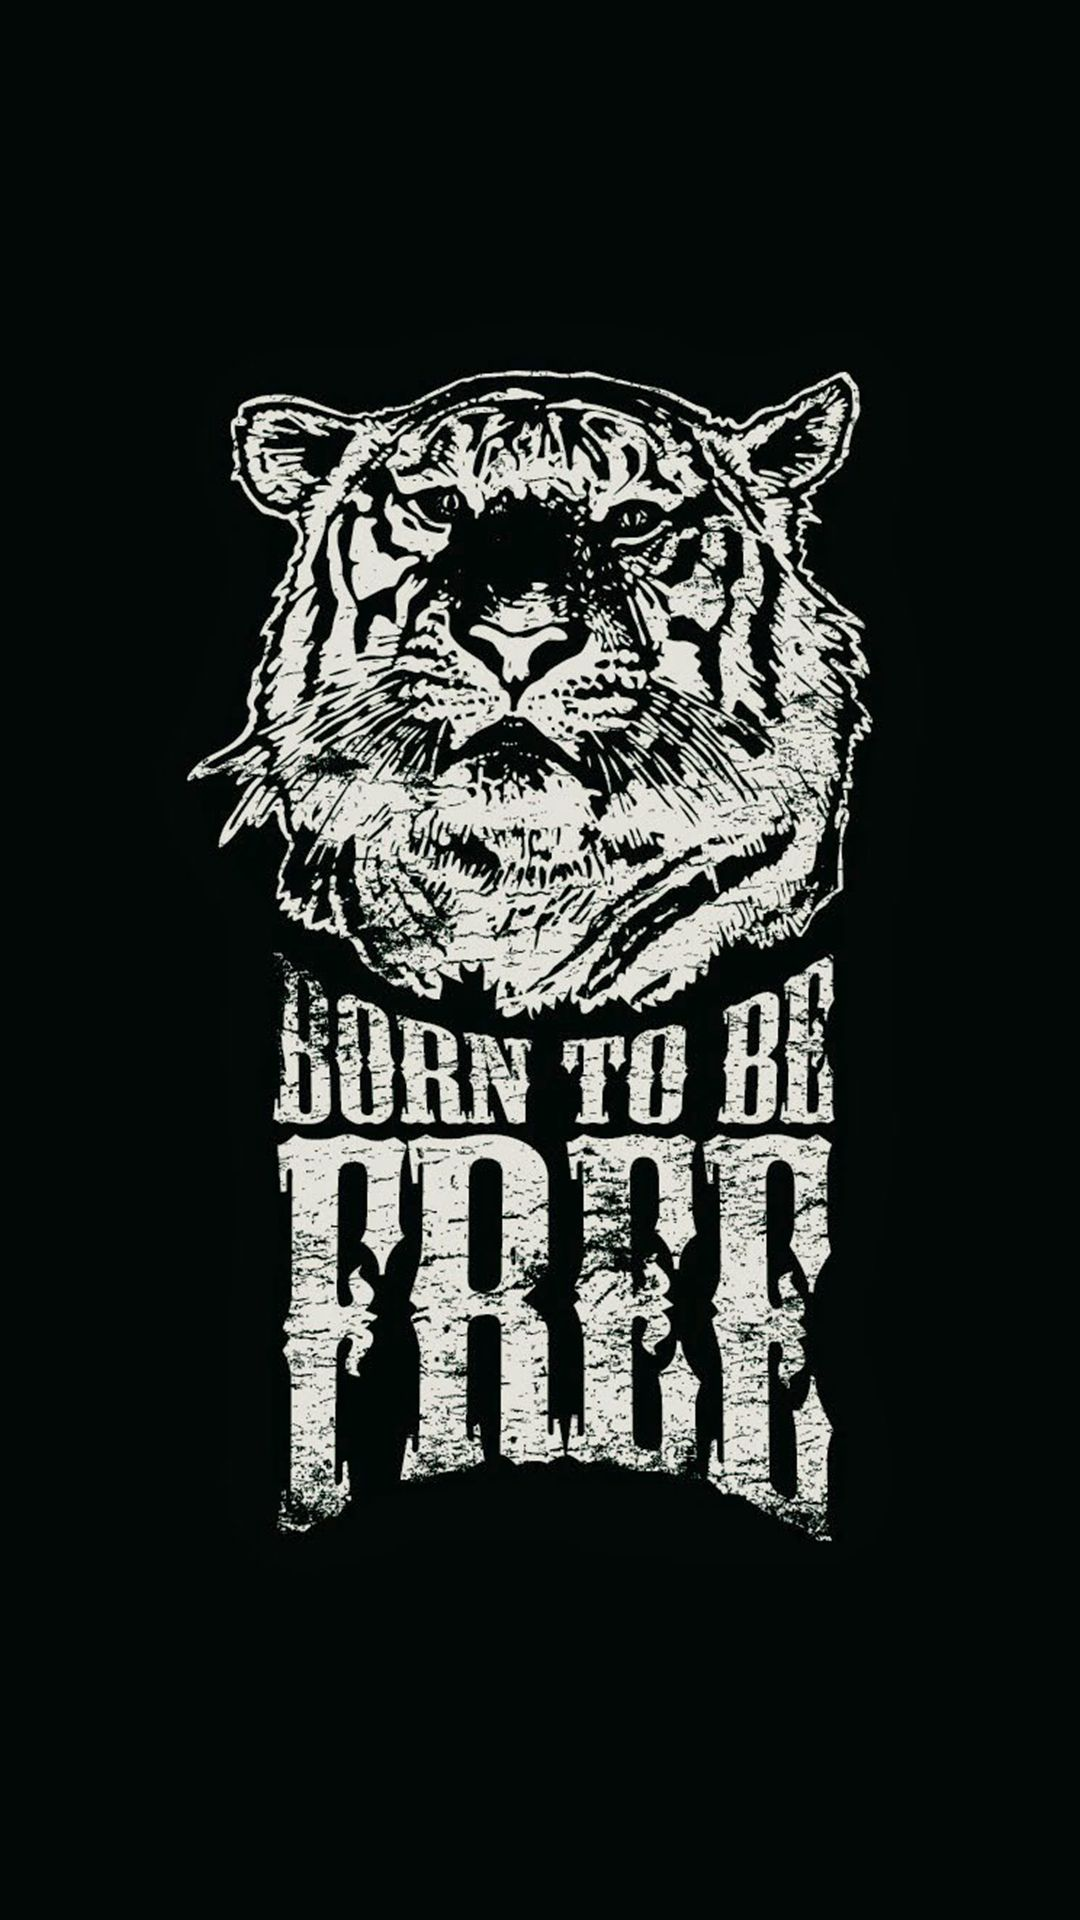 Born To Be Free Tiger Illustration Iphone 6 Wallpaper Download Iphone Wallpapers Ipad Wallpapers One St Tiger Illustration Iphone 5s Wallpaper Vintage Fonts